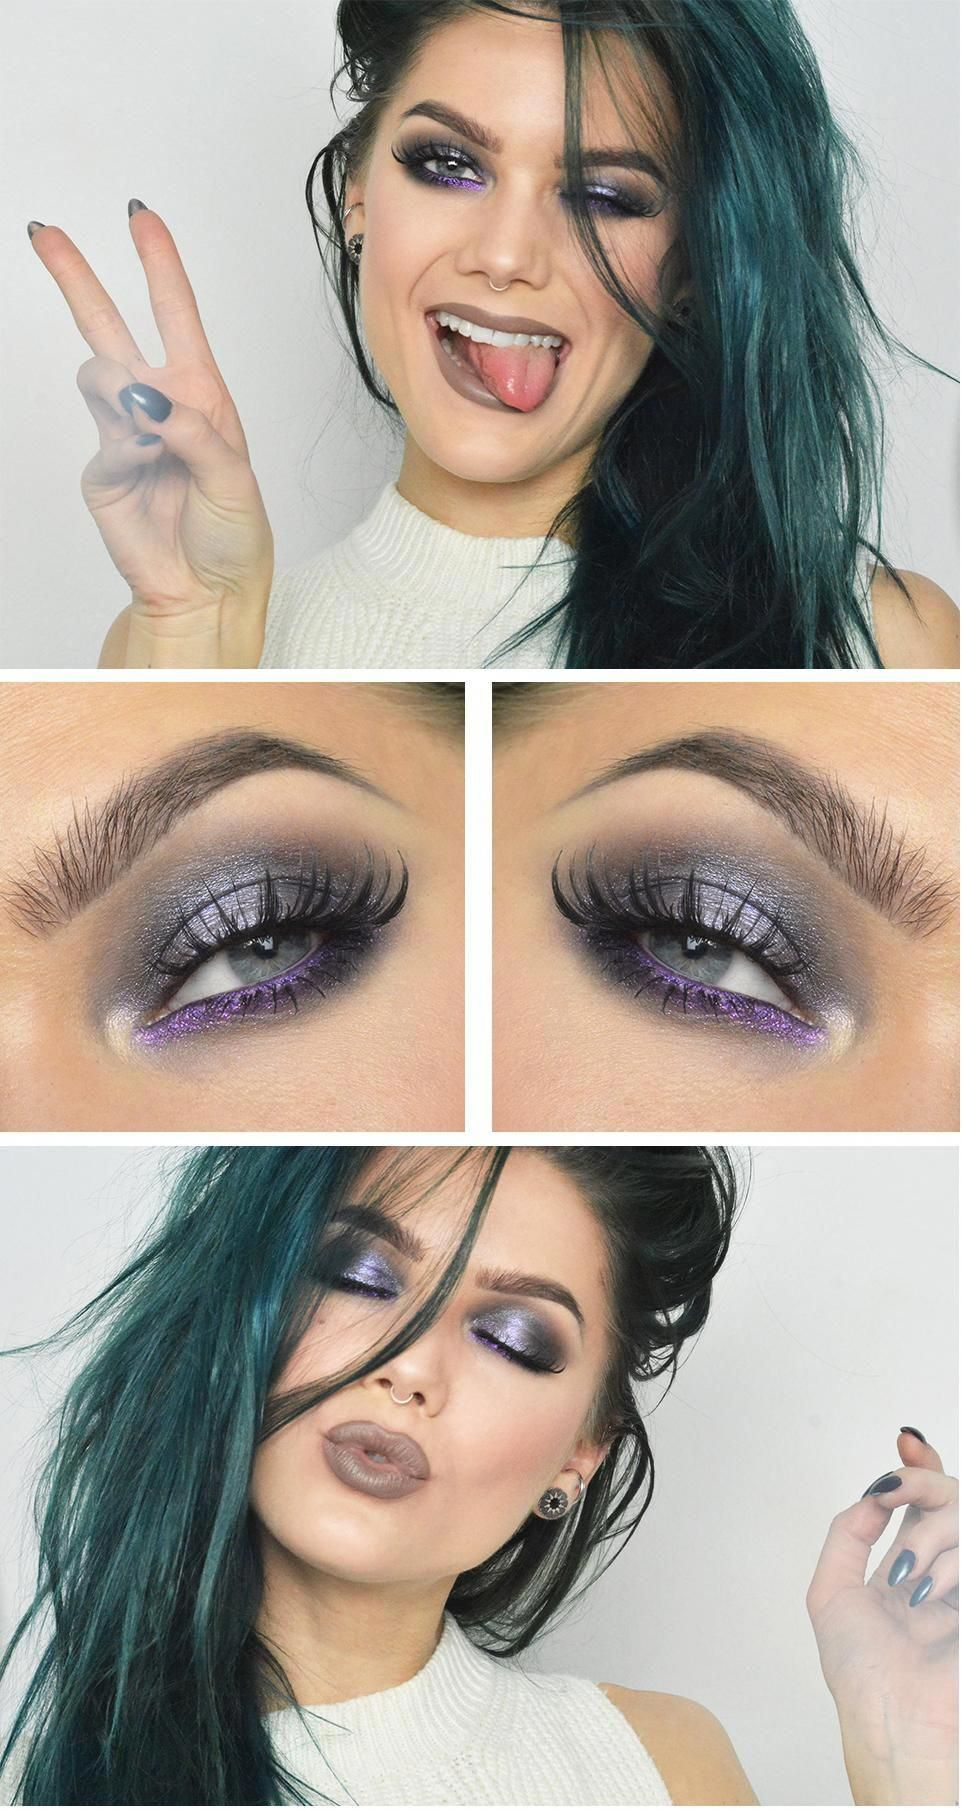 Eye Makeup Brushes | Branded Makeup Sets | What Are The Best Makeup Brushes 2019…